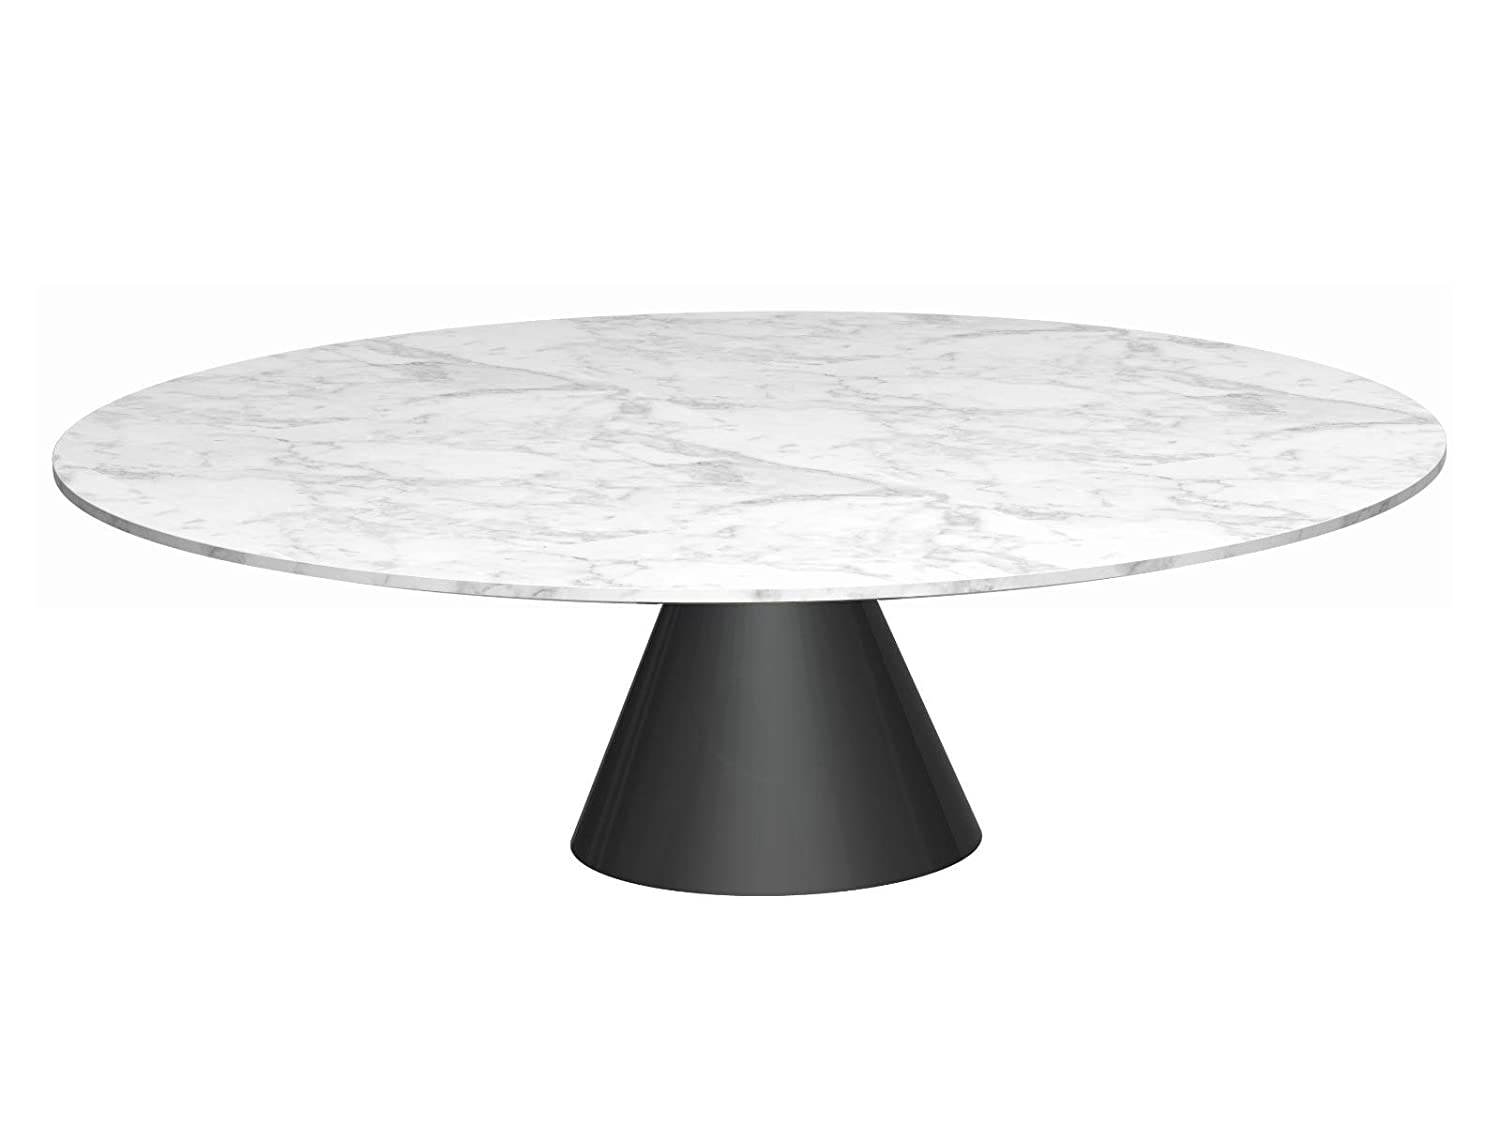 Gillmorespace Large Circular Coffee Table White Marble Top